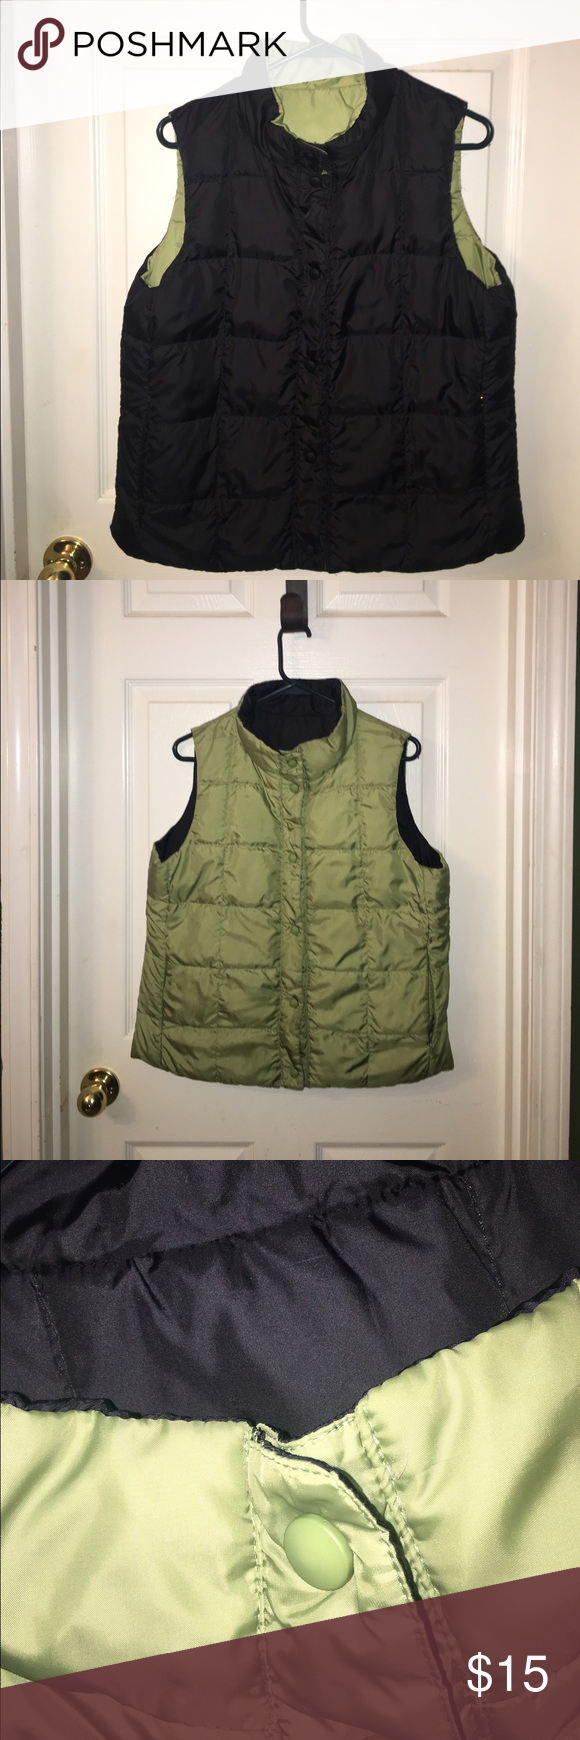 🌟🌟 SUPER CUTE REVERSIBLE VEST 🌟🌟 LOVE this Vest! ❤❤ Reversible as shown in the photos... black & green with pockets on both sides 🌟 Jackets & Coats Vests